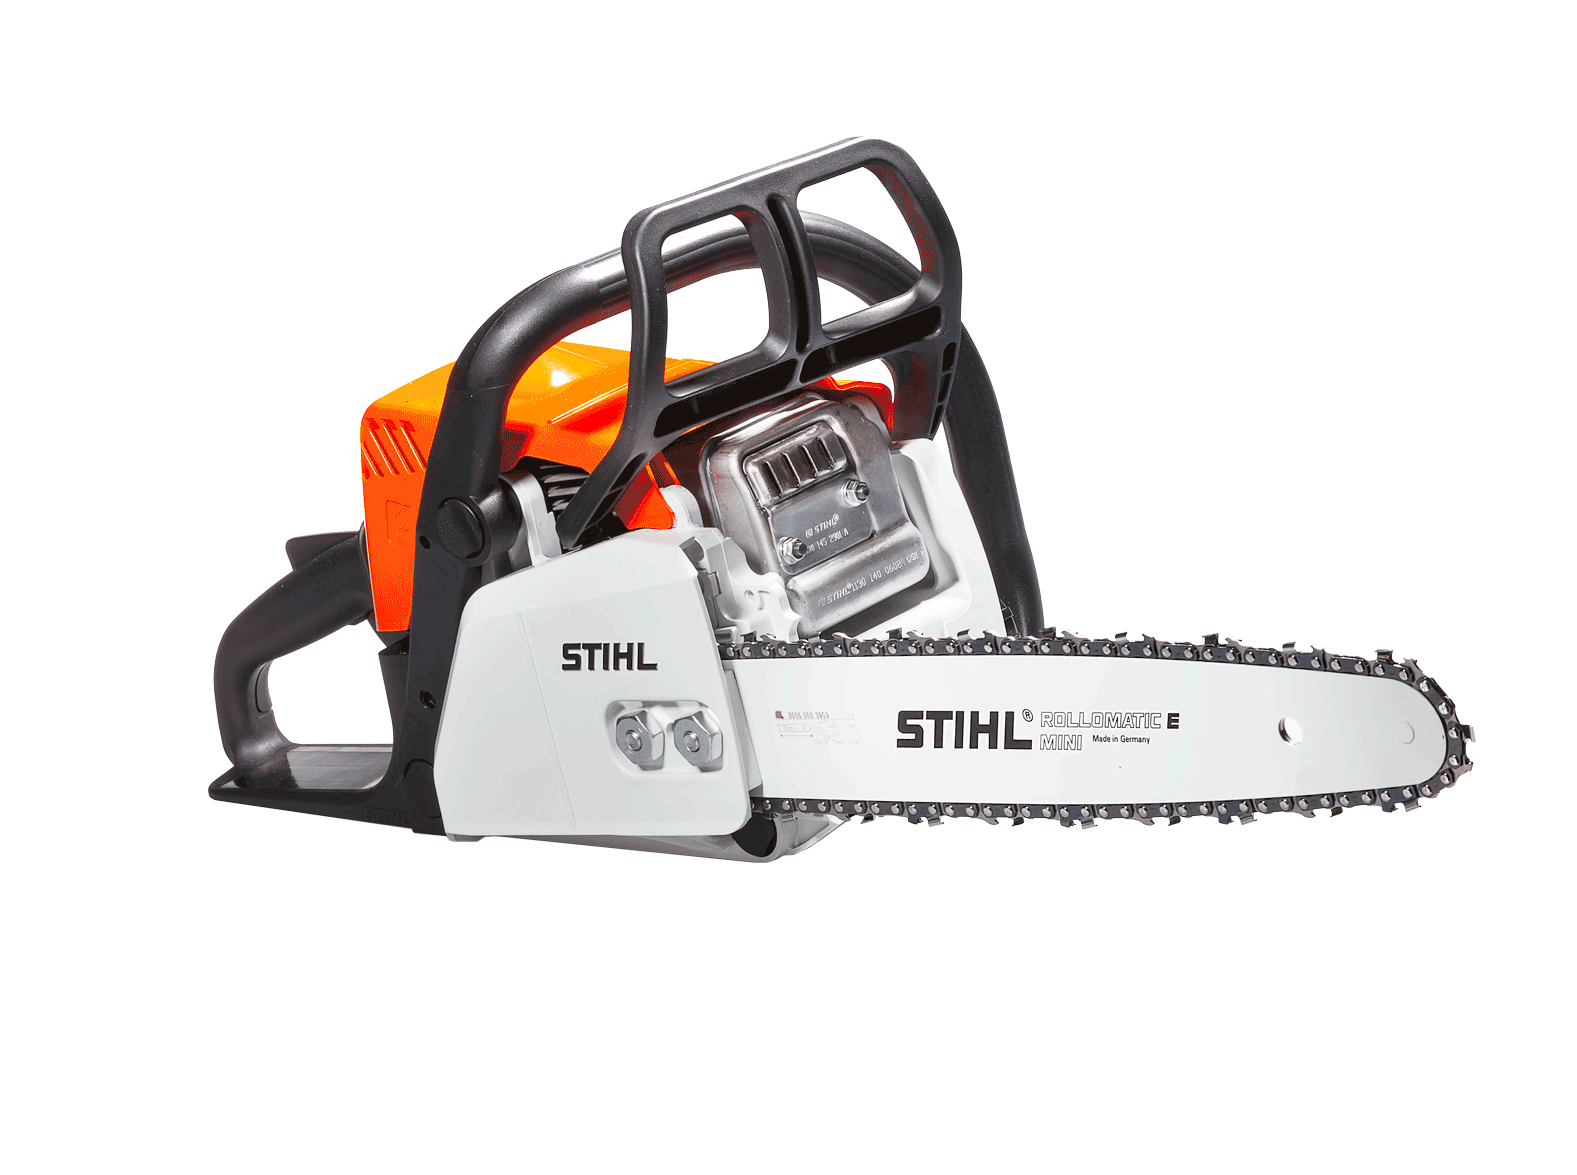 Stihl-[9600], Strainrite, Robertson, Engineering, product, photography